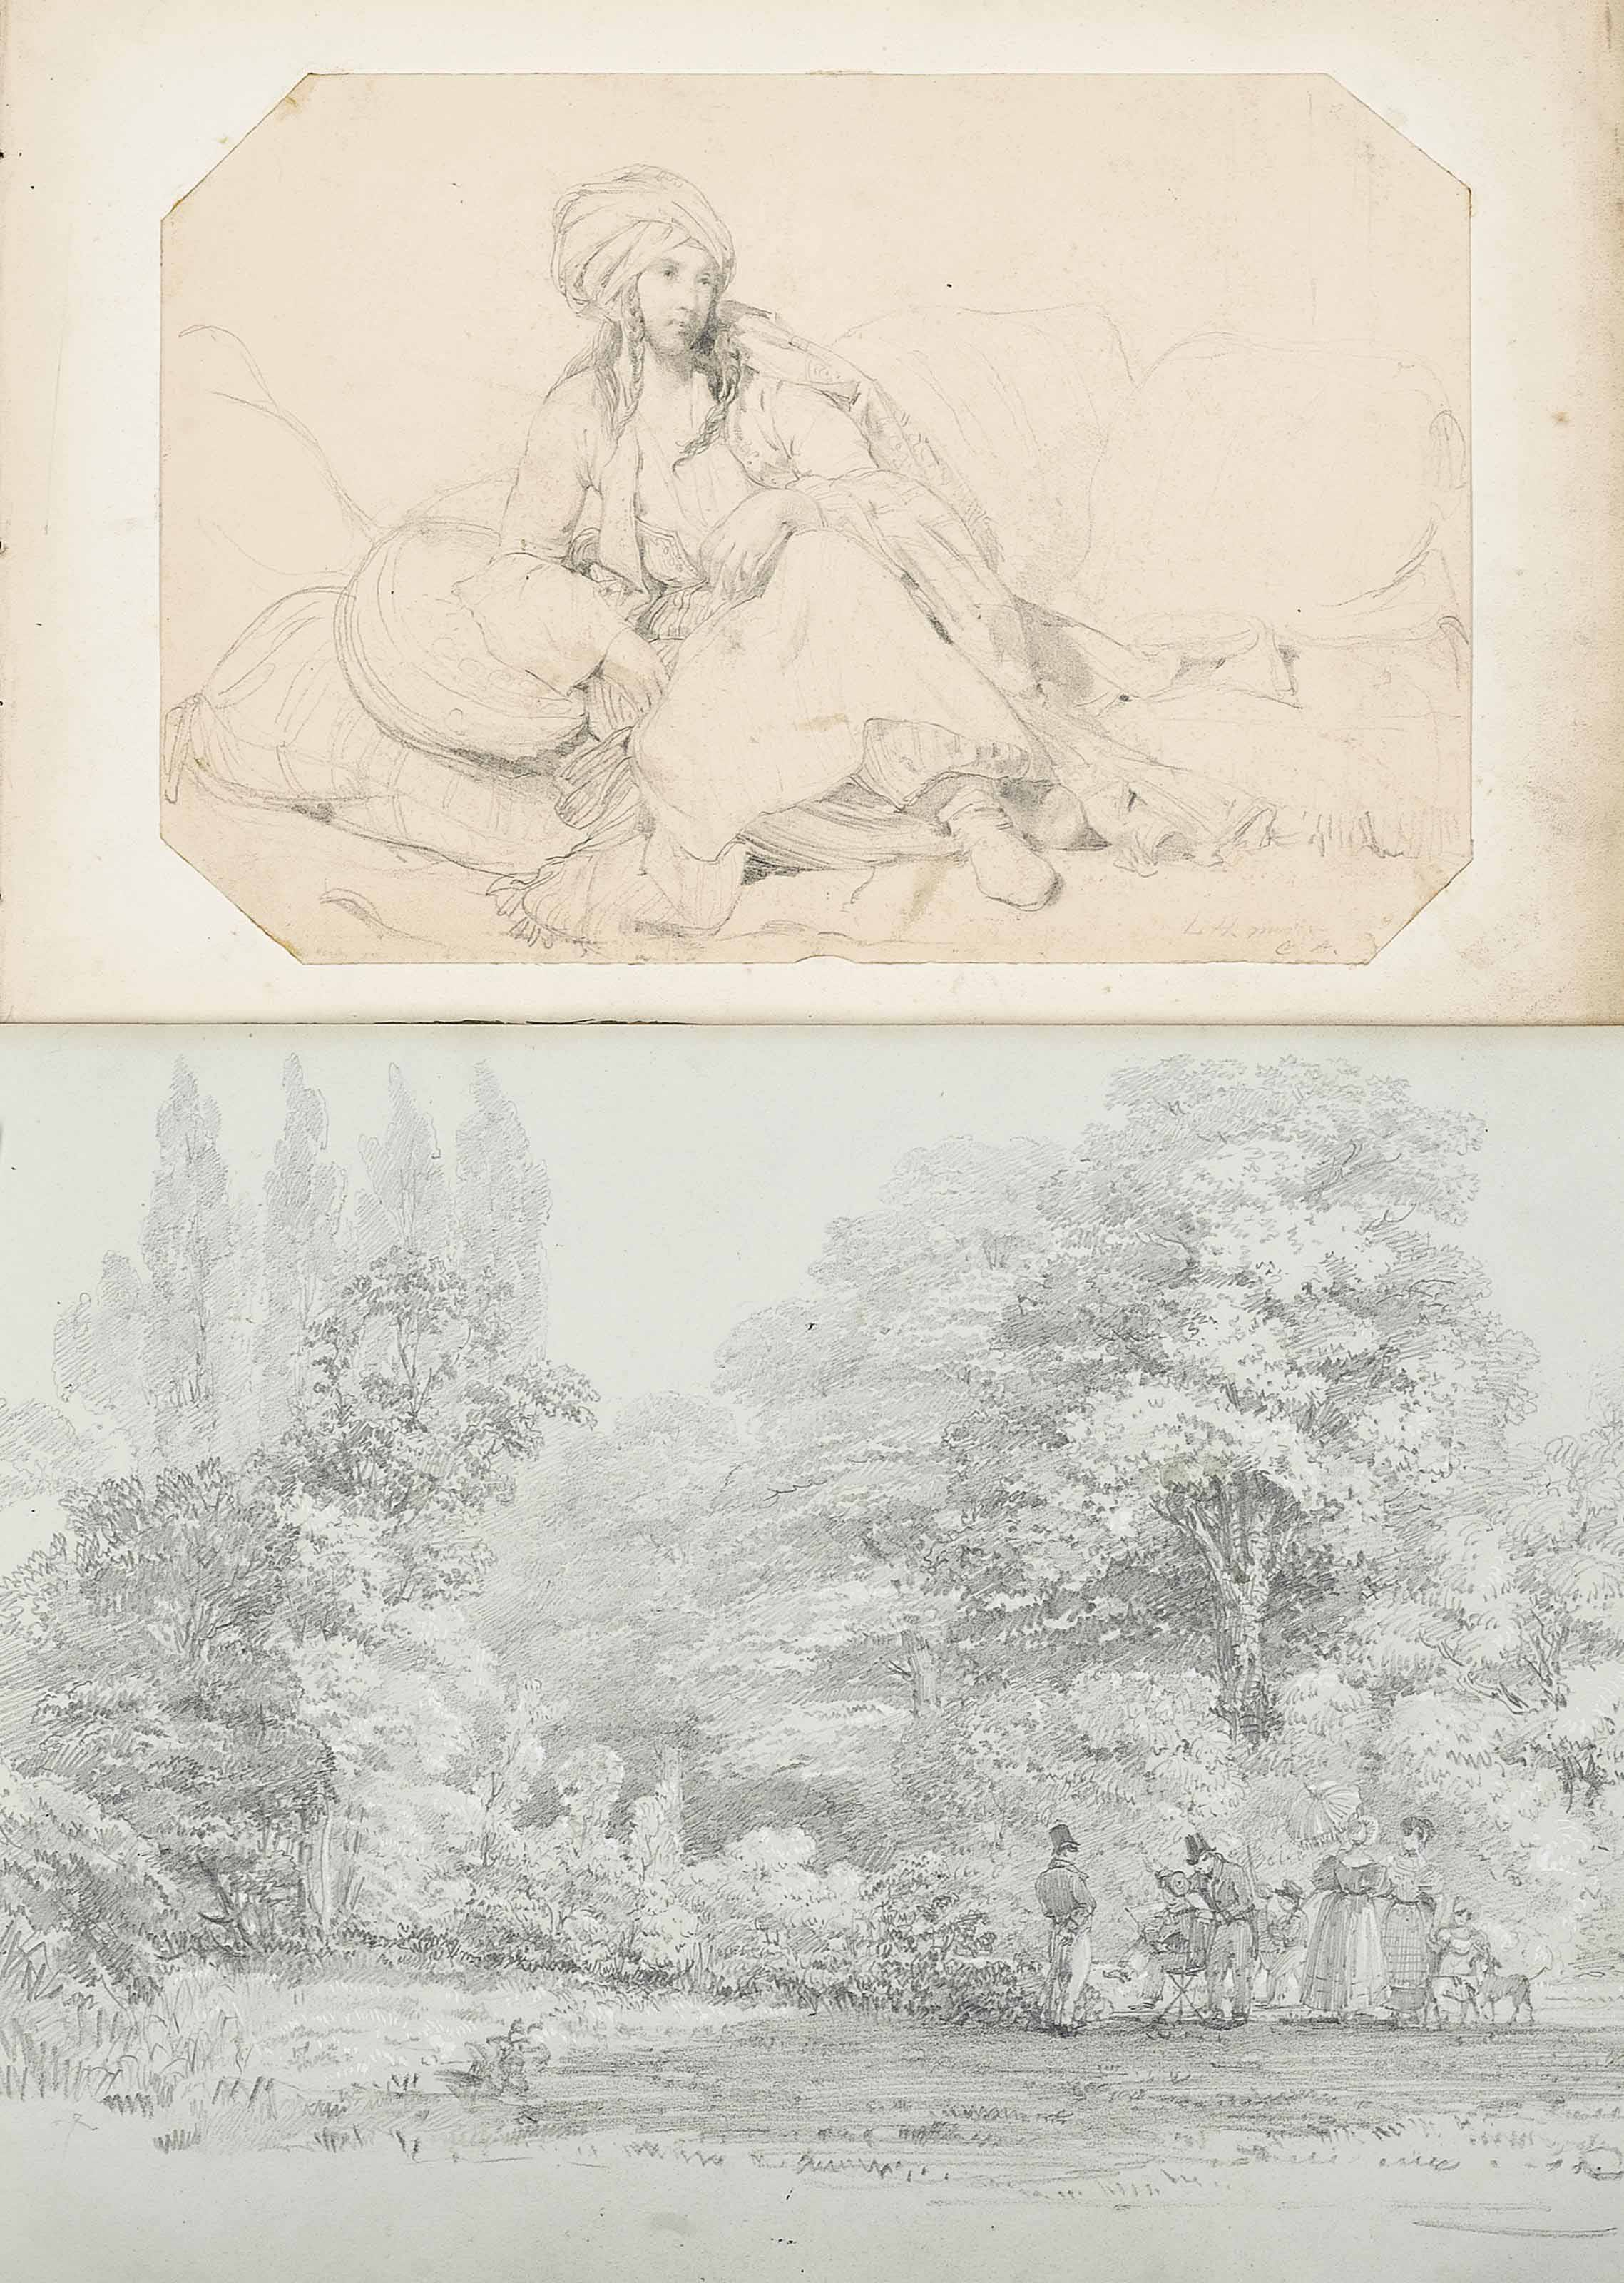 A quantity of unframed drawings and watercolours, mostly by or attributed to Louis Haghe, P.R.I. (1806-1885) and also to Carl Haghe and Louis Gallait, the majority landscape subjects, portraits and figure studies, and copies after Old Masters including; Intricate views of Buckingham Palace and Windsor Palace;  An Odalisque (illustrated);  and A drawing of a painting party (illustrated)